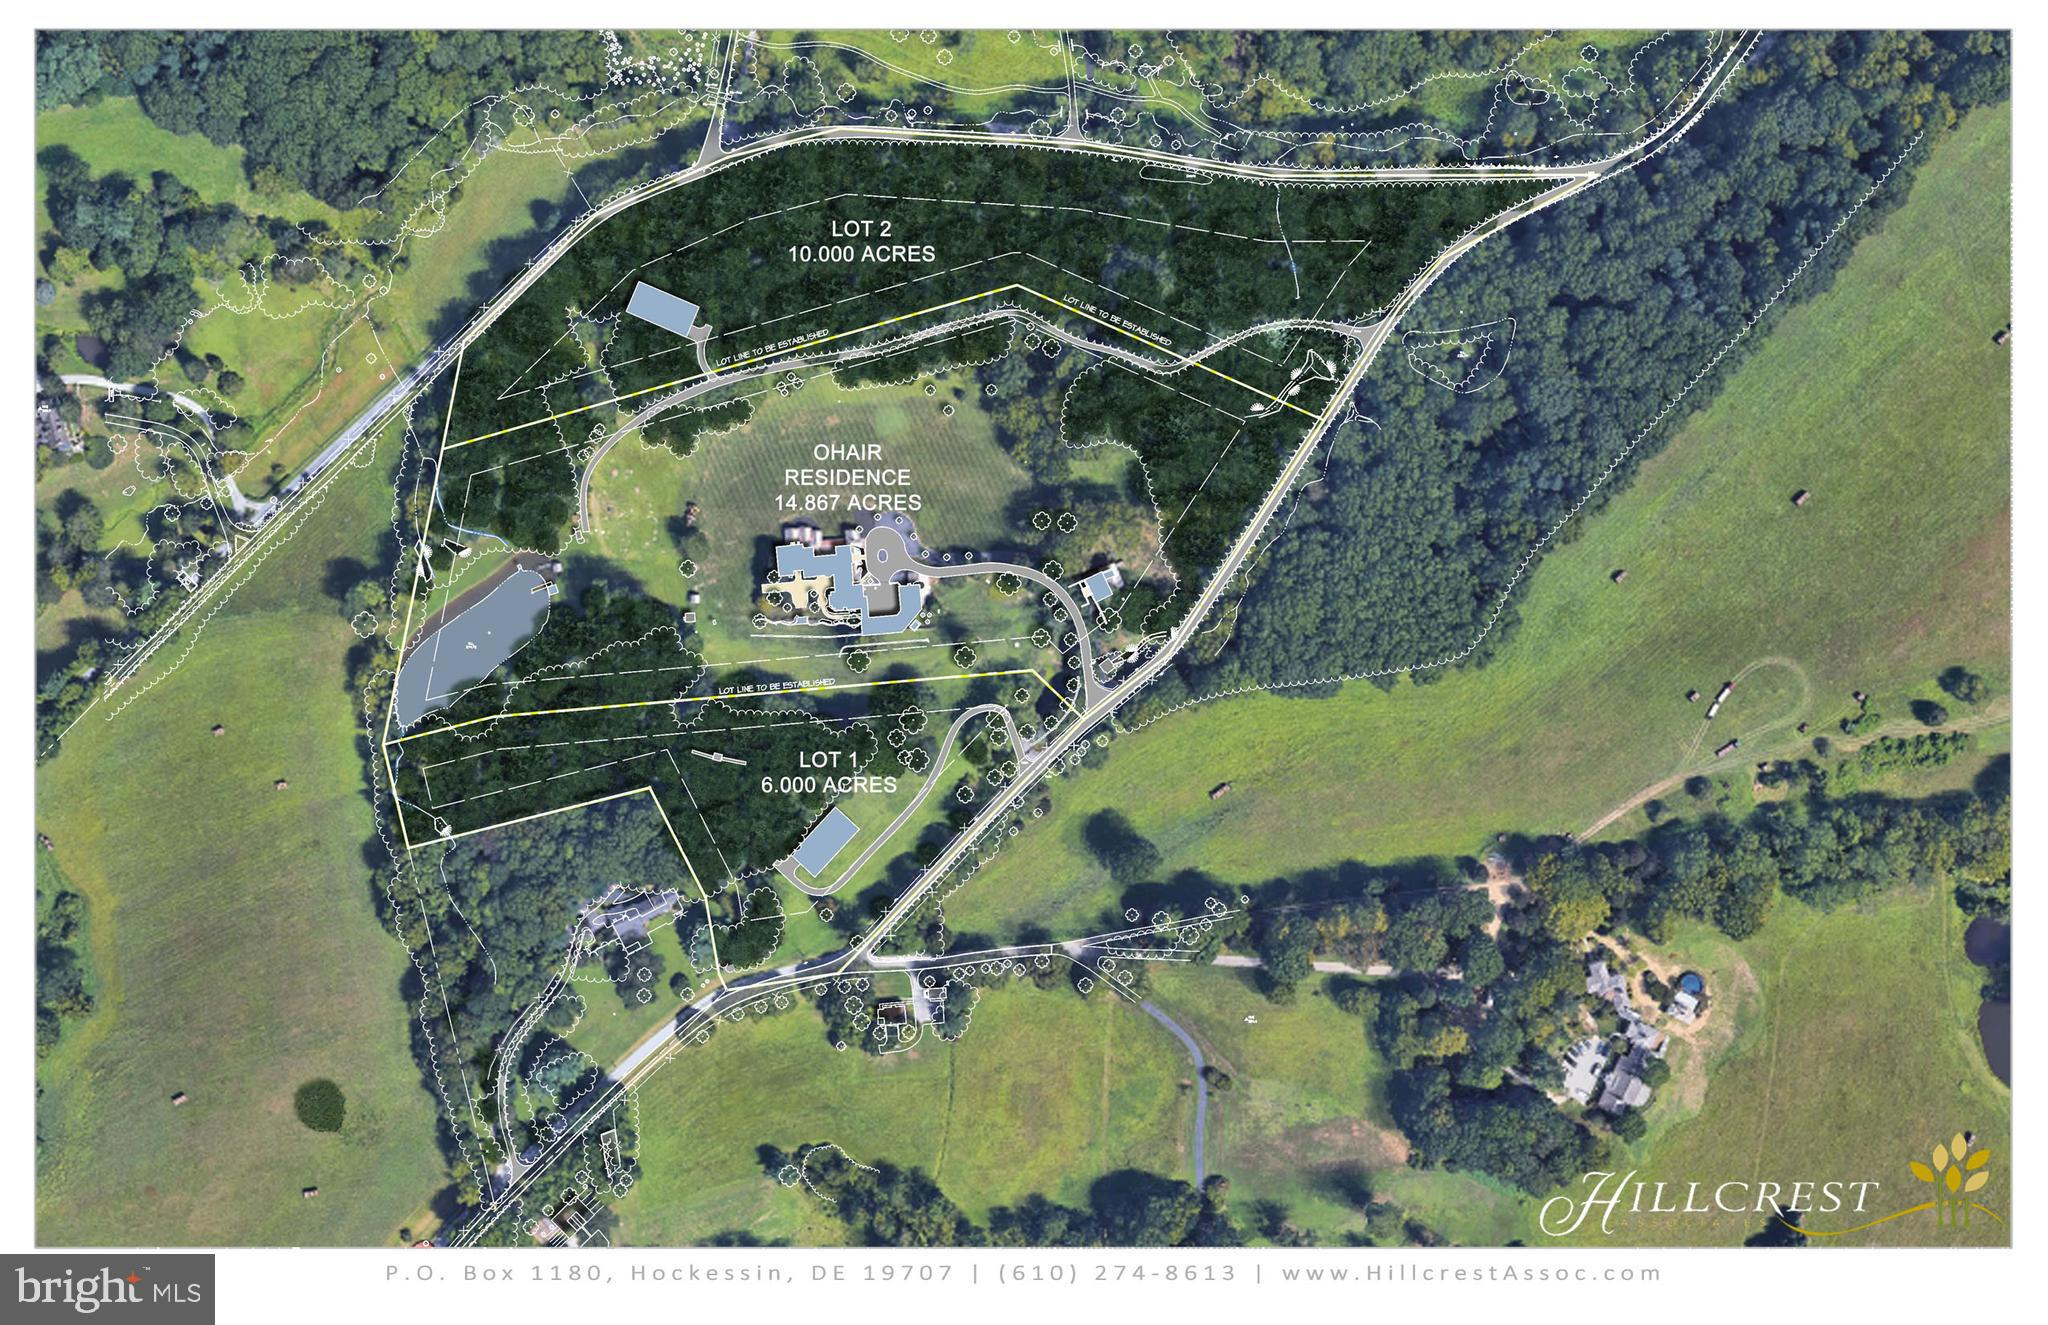 1151 STOCKFORD RD., - LOT B, CHADDS FORD, PA 19317